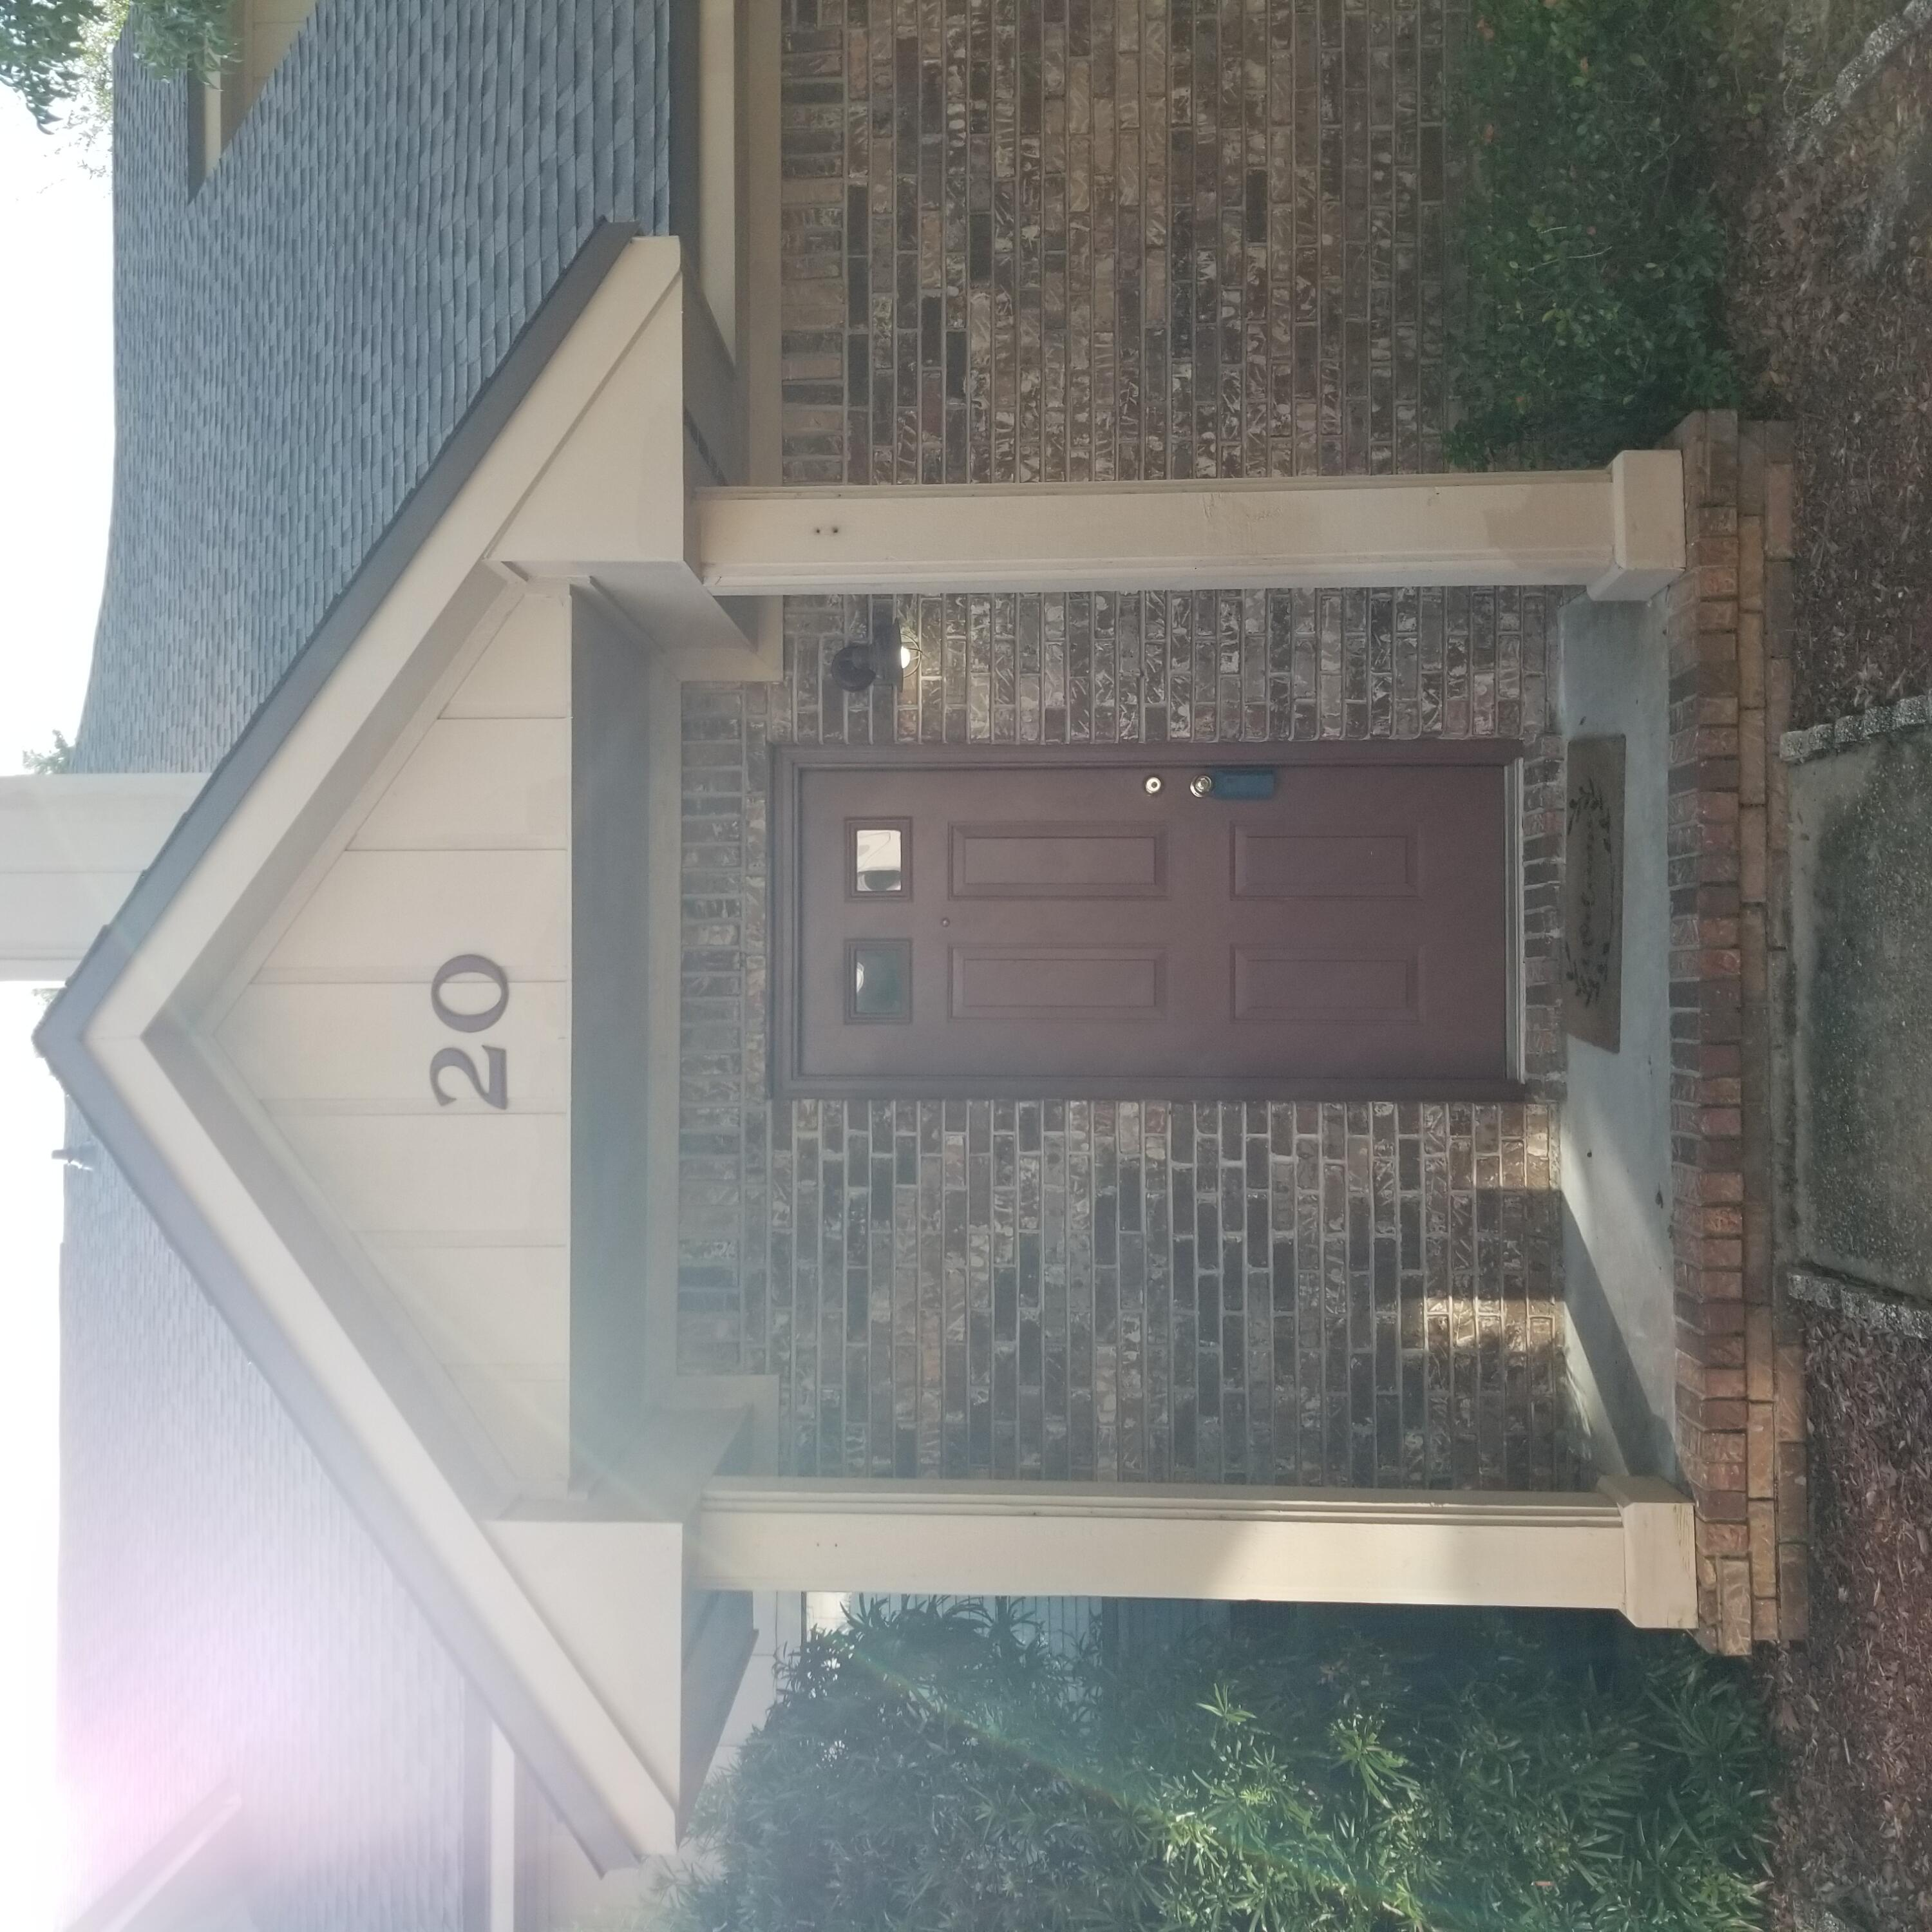 Beautiful townhouse perfect to live in or as an investment. Home has an excellent rental history and